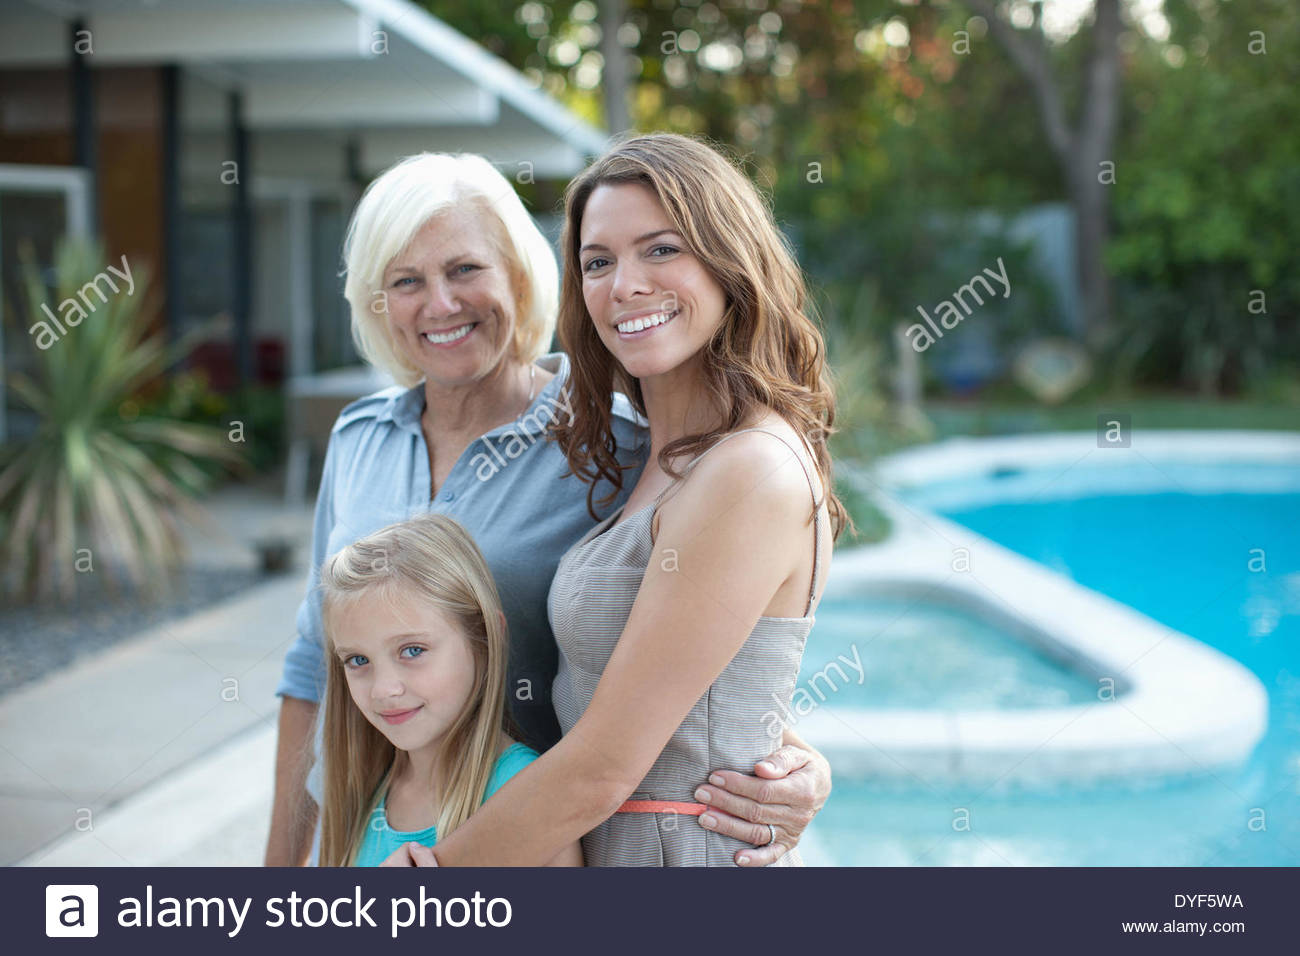 Three generations of women smiling together - Stock Image